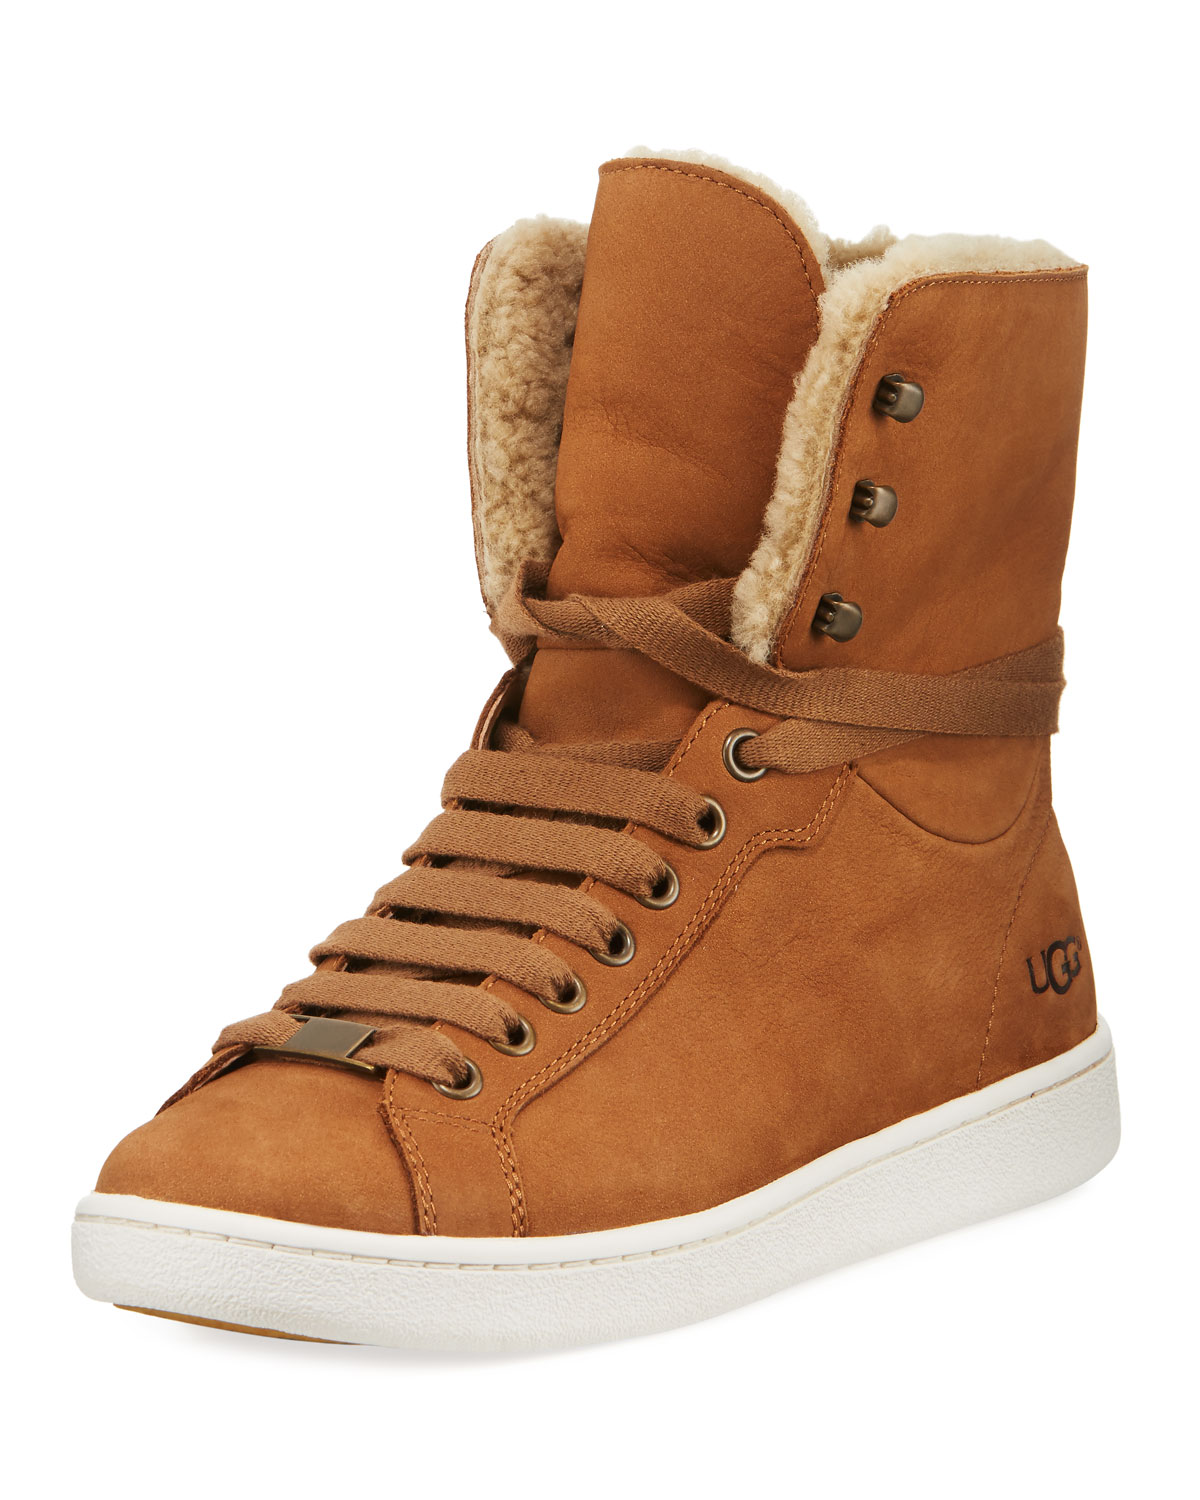 64aa0d7f890 Starlyn Shearling High-Top Sneakers